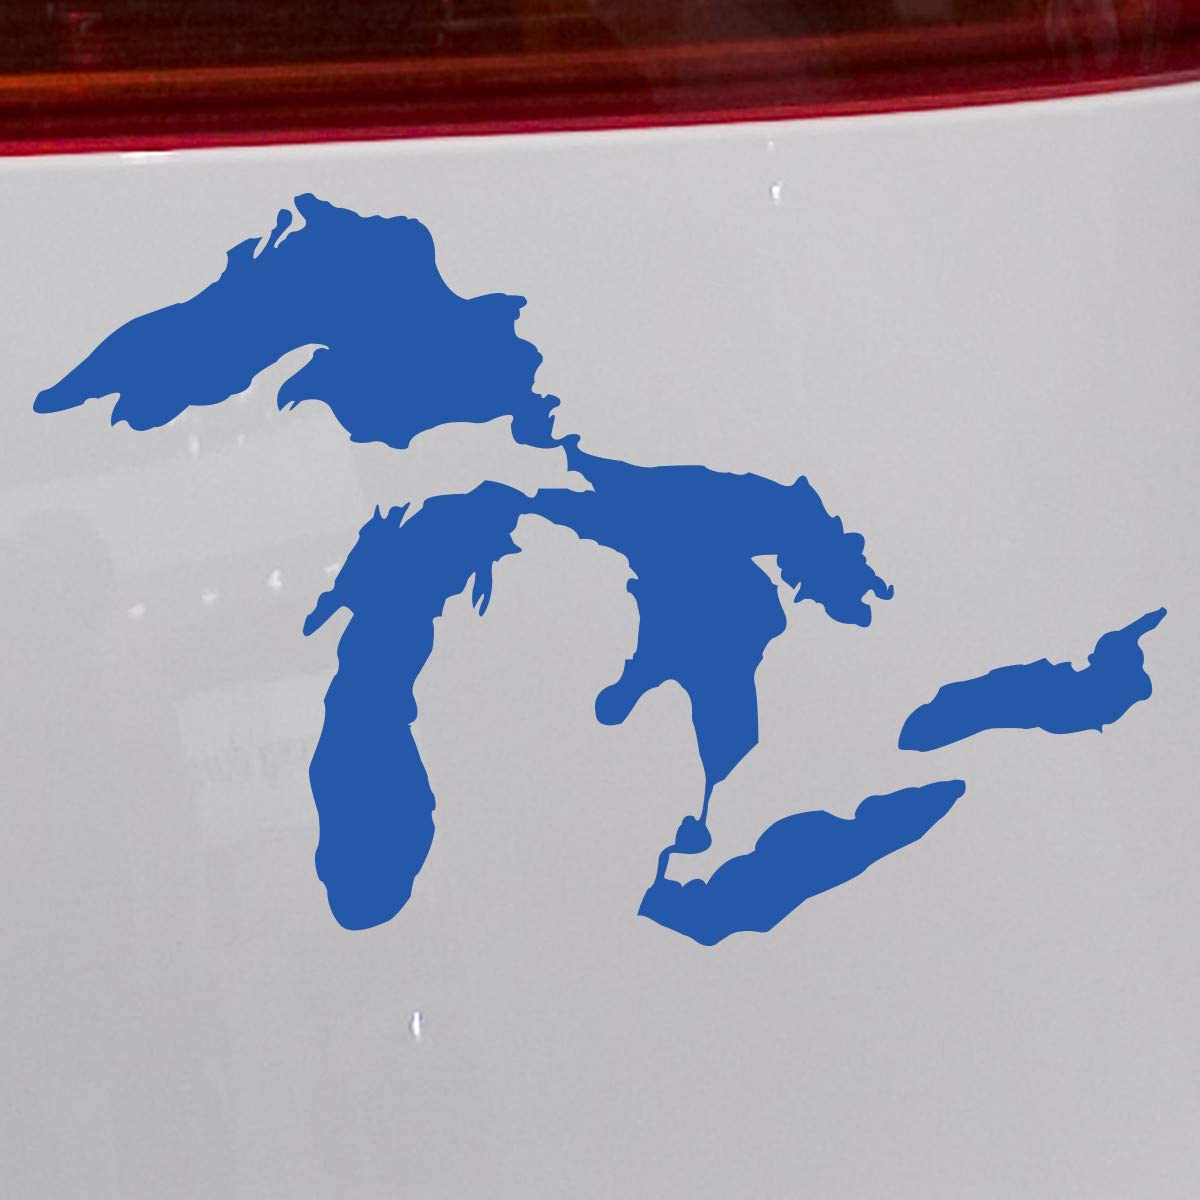 Amazon Com State Of Michigan Red Vinyl Decal Home Heart Love Sticker For Car Truck Van Window 5 8 X 5 2 Red Automotive